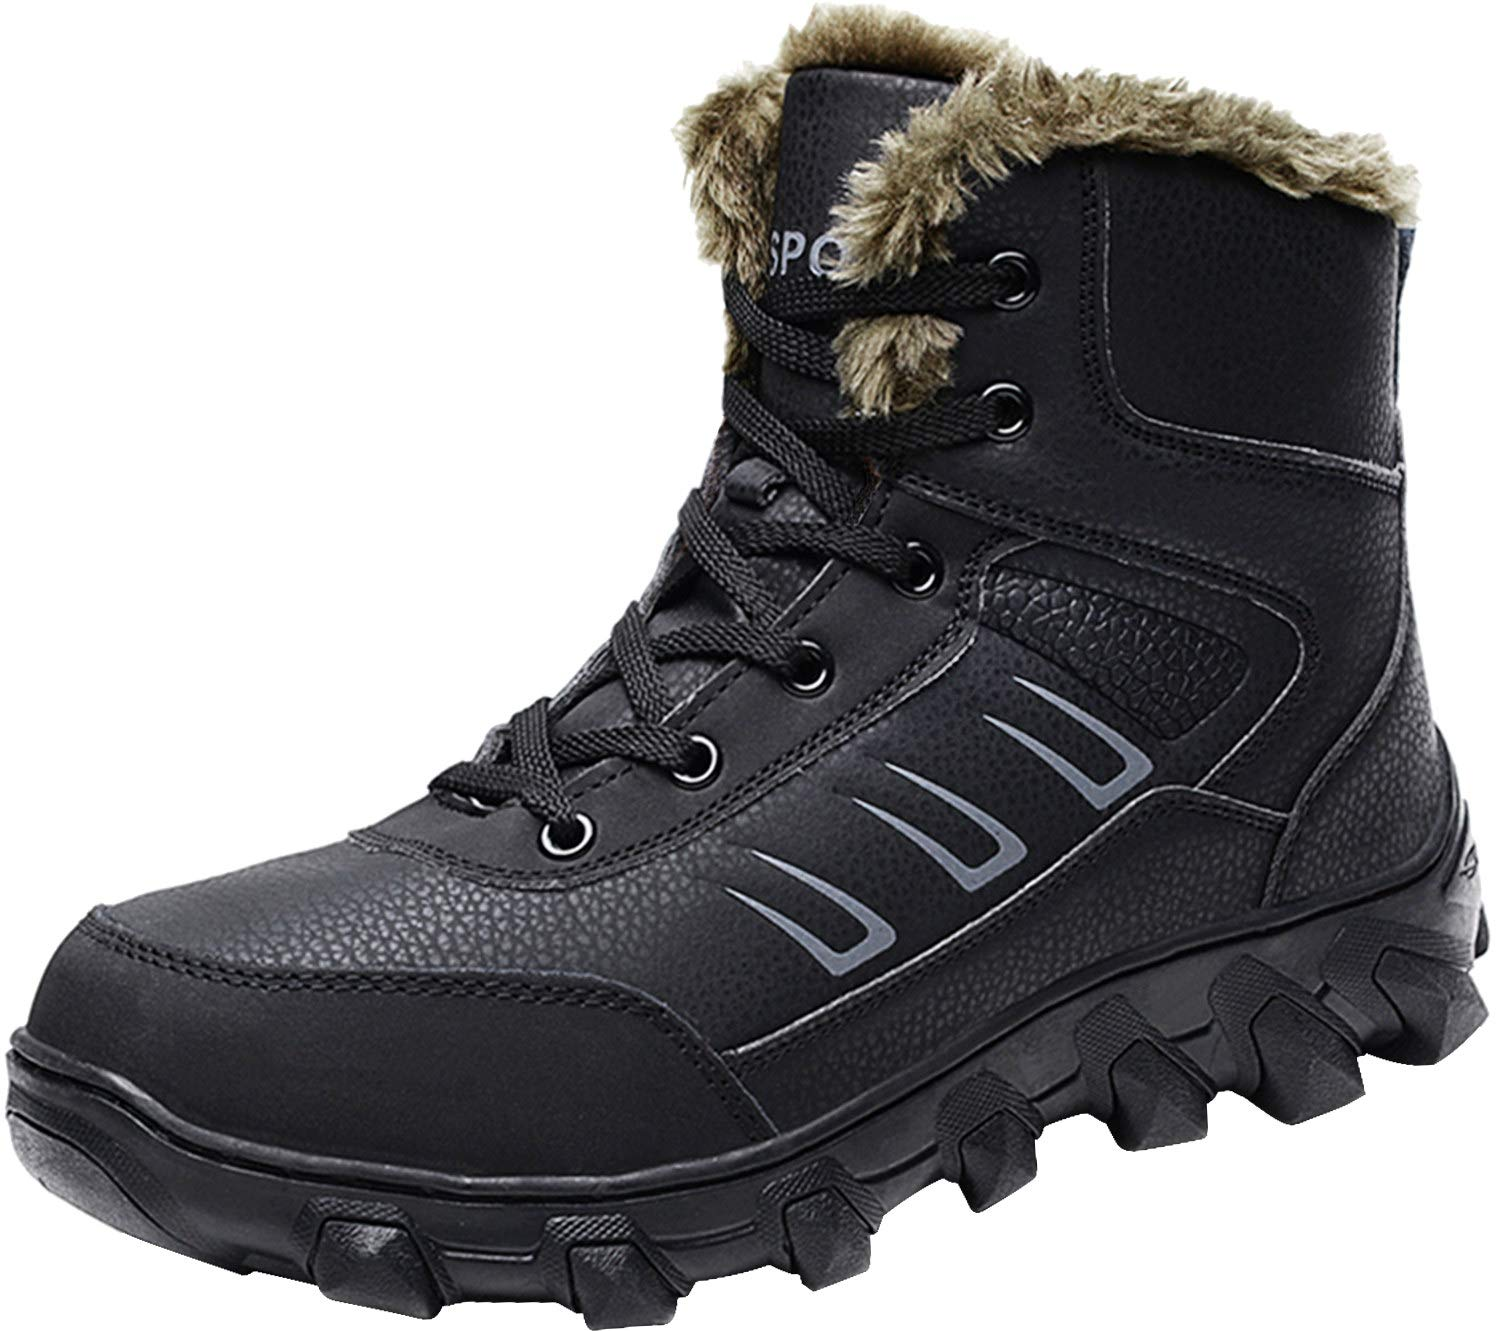 Barerun Men's Hiker Leather Waterproof Hiking Boot Outdoor Backpacking Snow Boots Black 9 D(M) US …